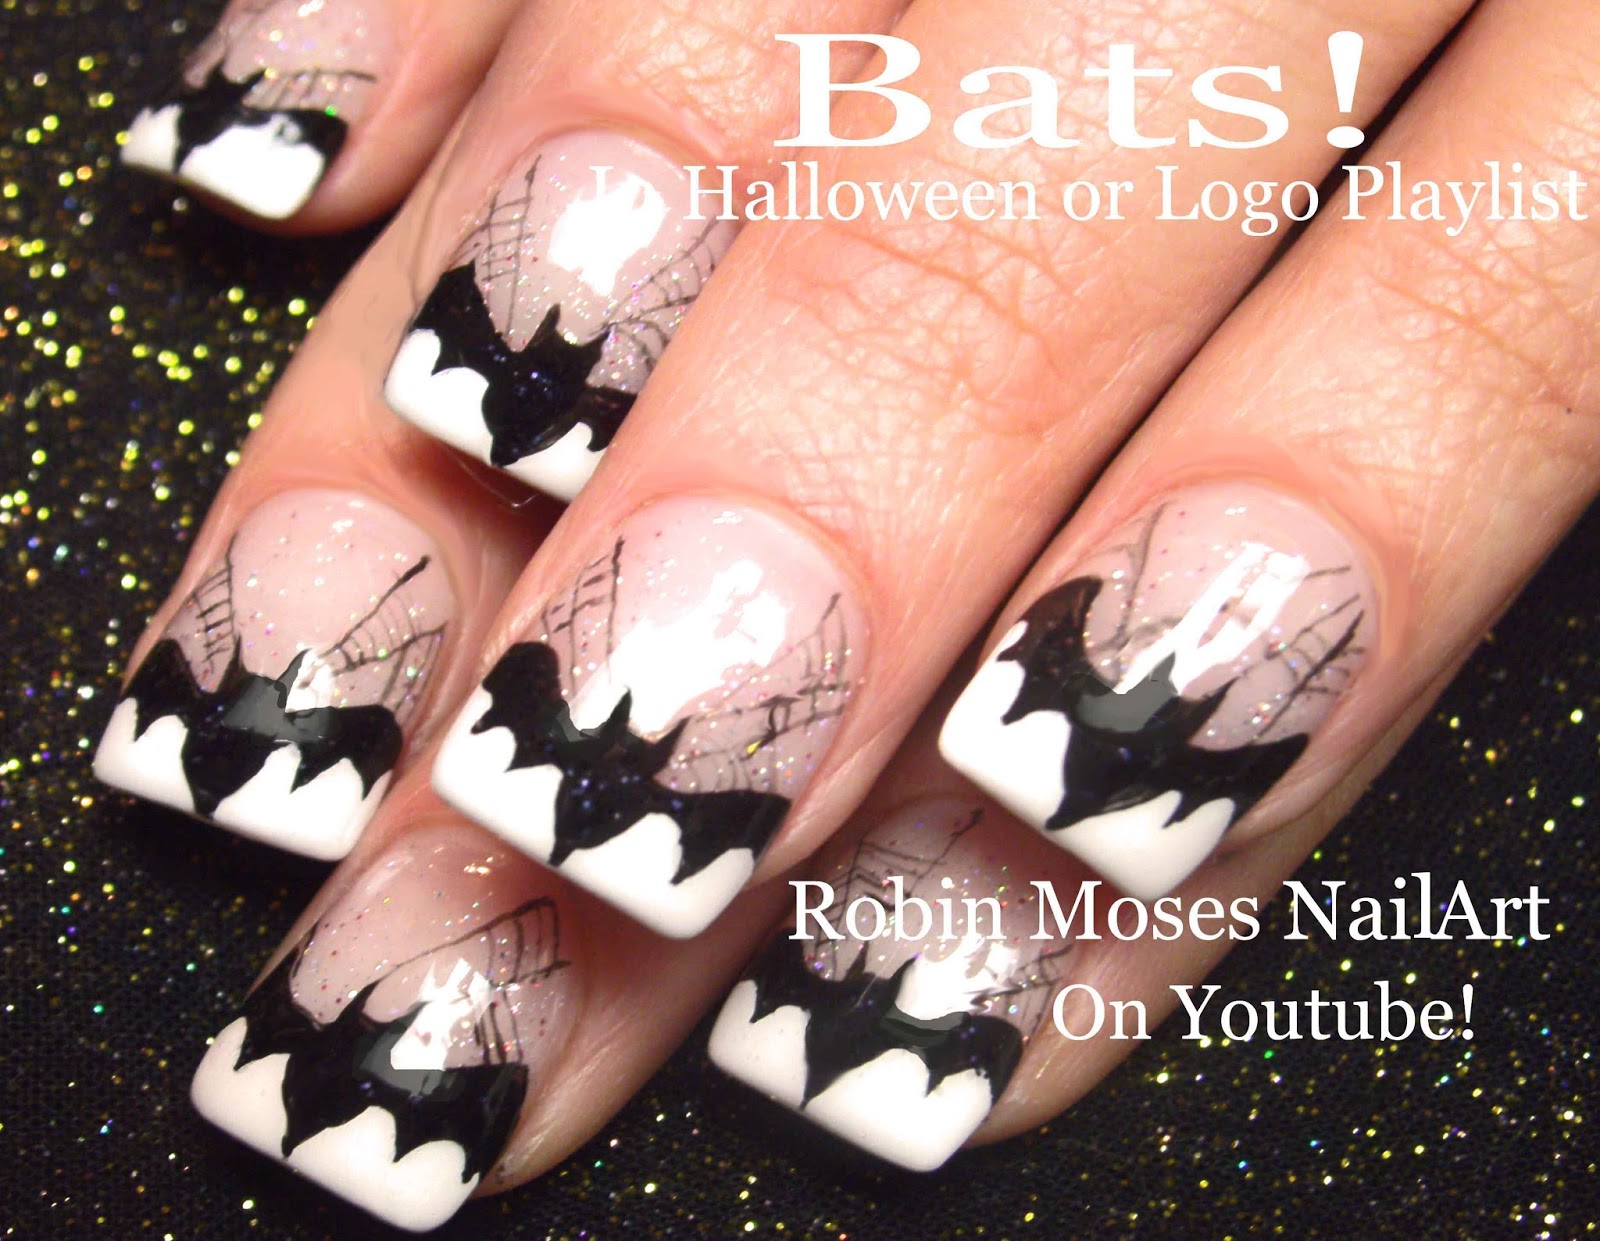 Robin moses nail art halloween nails dark nail art dark sirens nail art women in the sea prinsesfo Choice Image